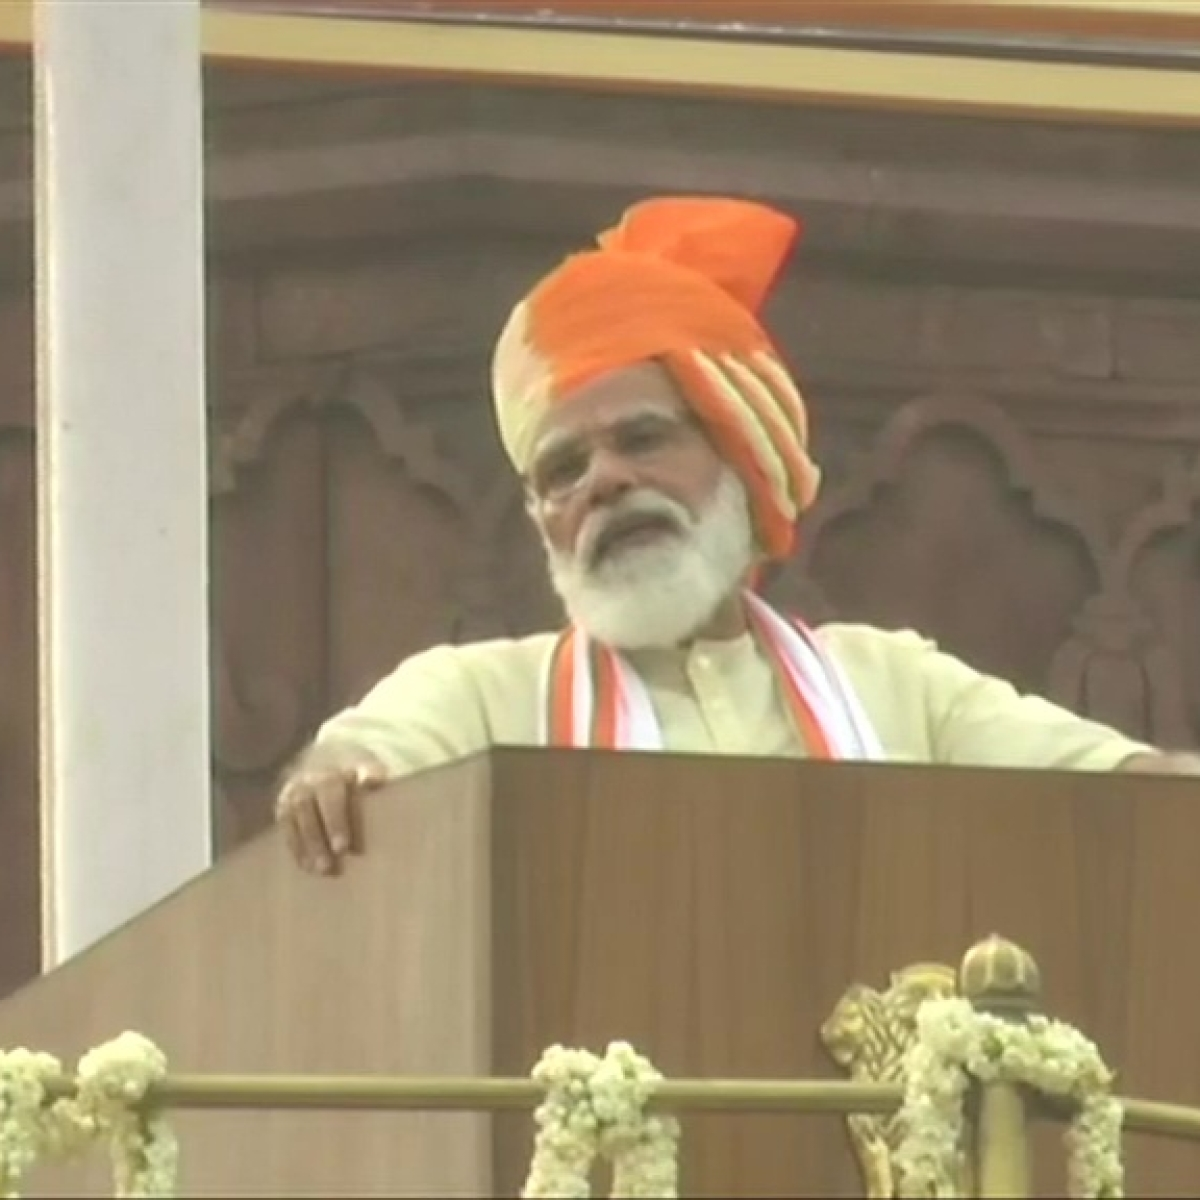 Three COVID-19 vaccines in testing stage in India: PM Modi during Independence Day 2020 speech